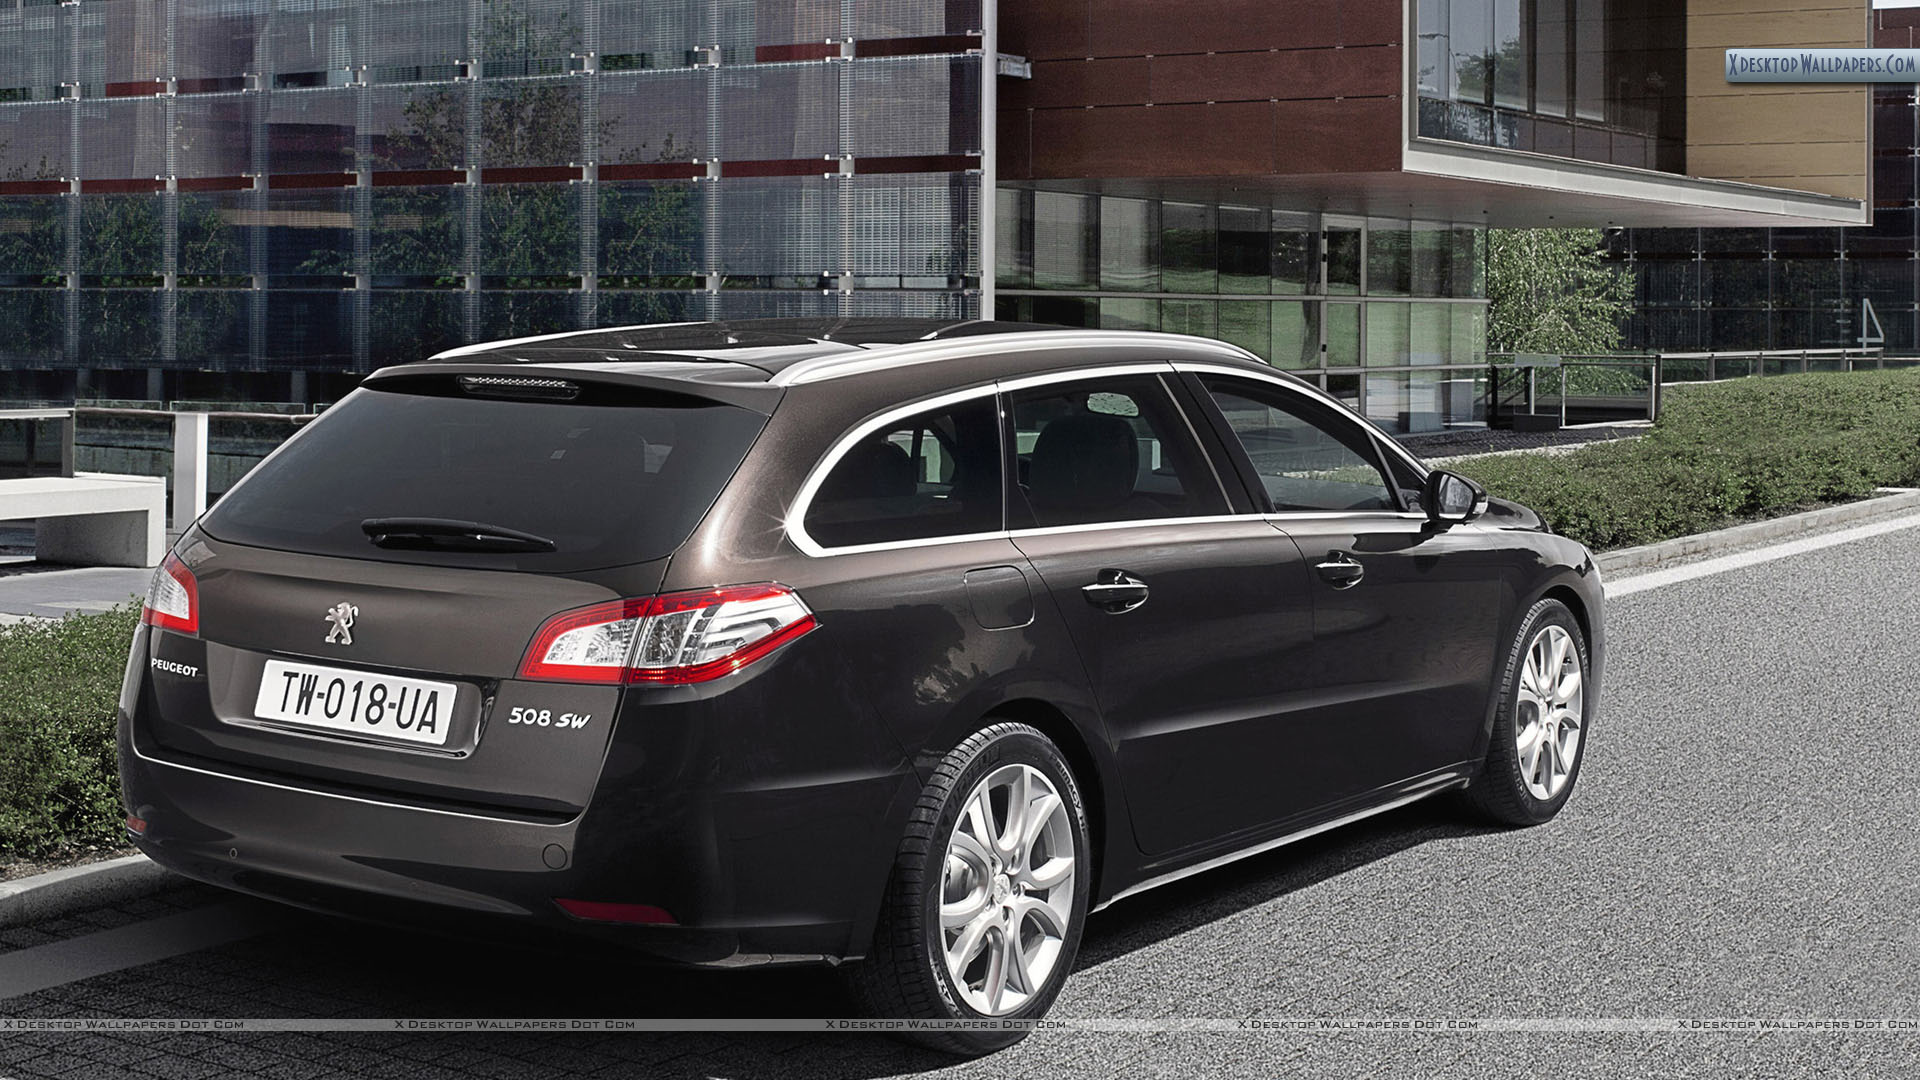 Peugeot 508 SW Parked Outside a Building Wallpaper 1920x1080